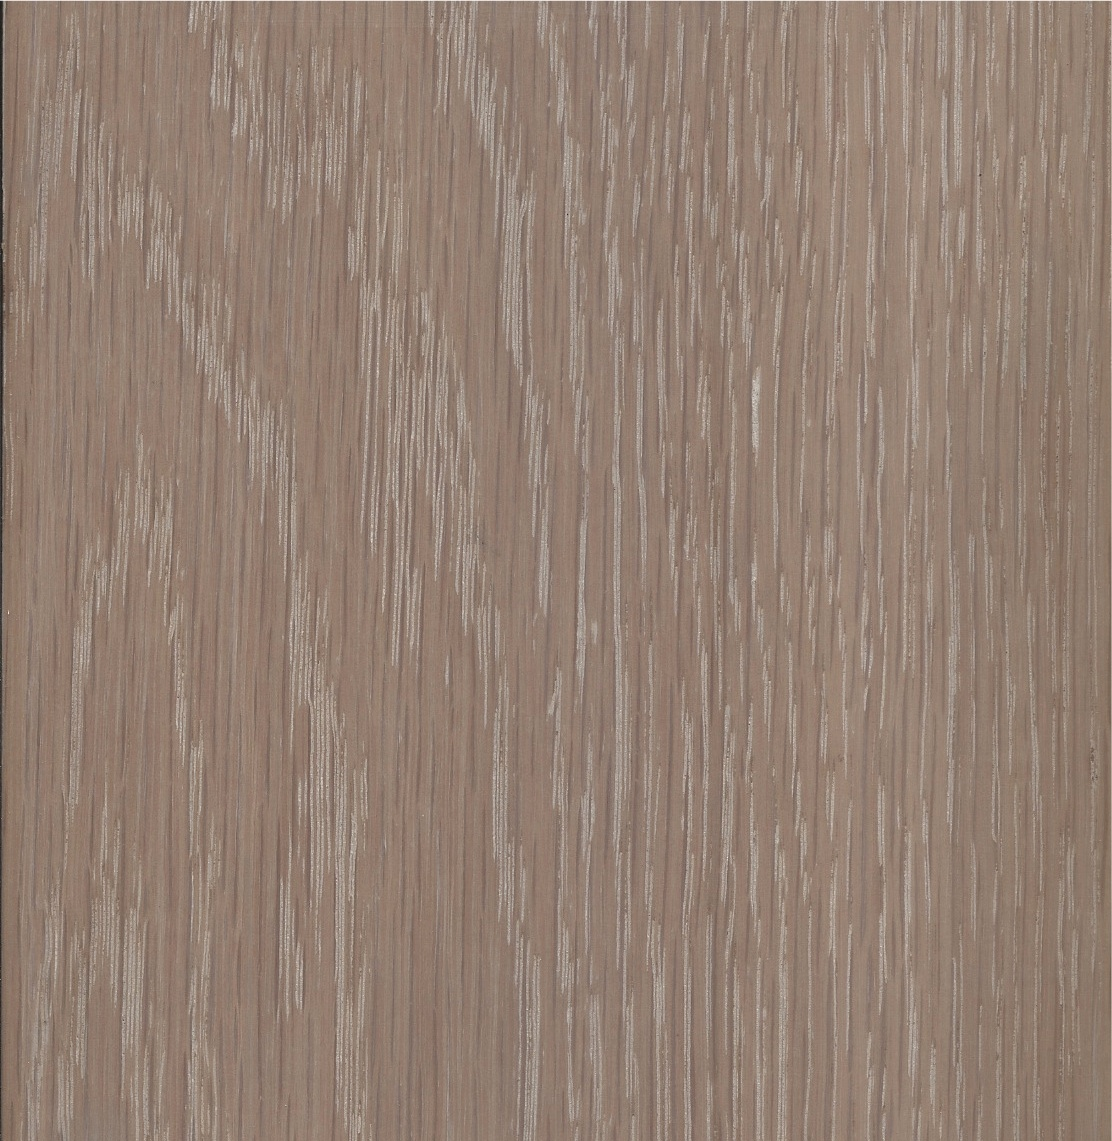 Polypalm Wood Products Sdn Bhd Multi Layer Engineered